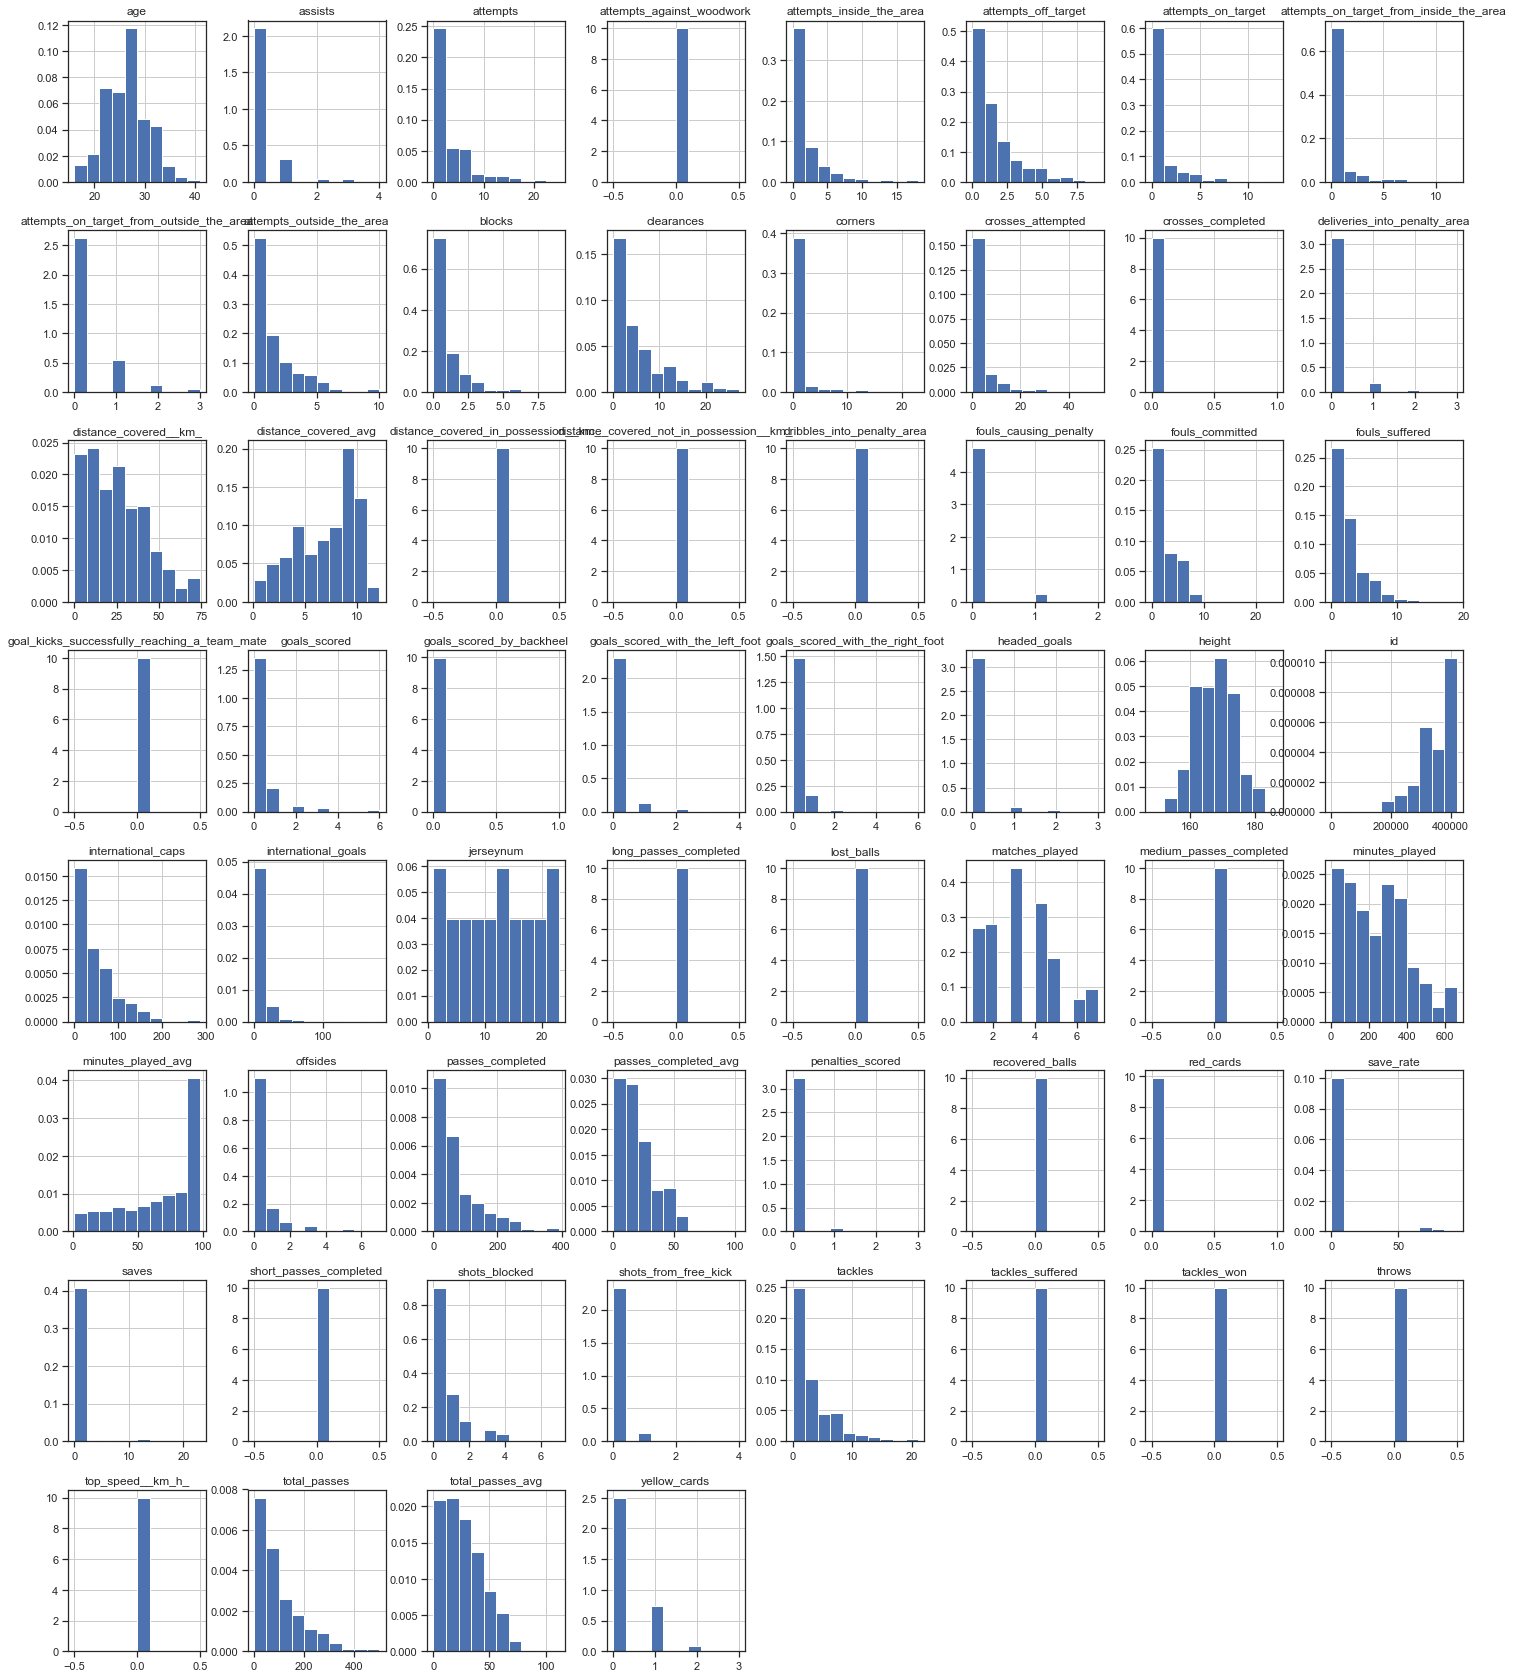 Women's World Cup Statistic Histograms